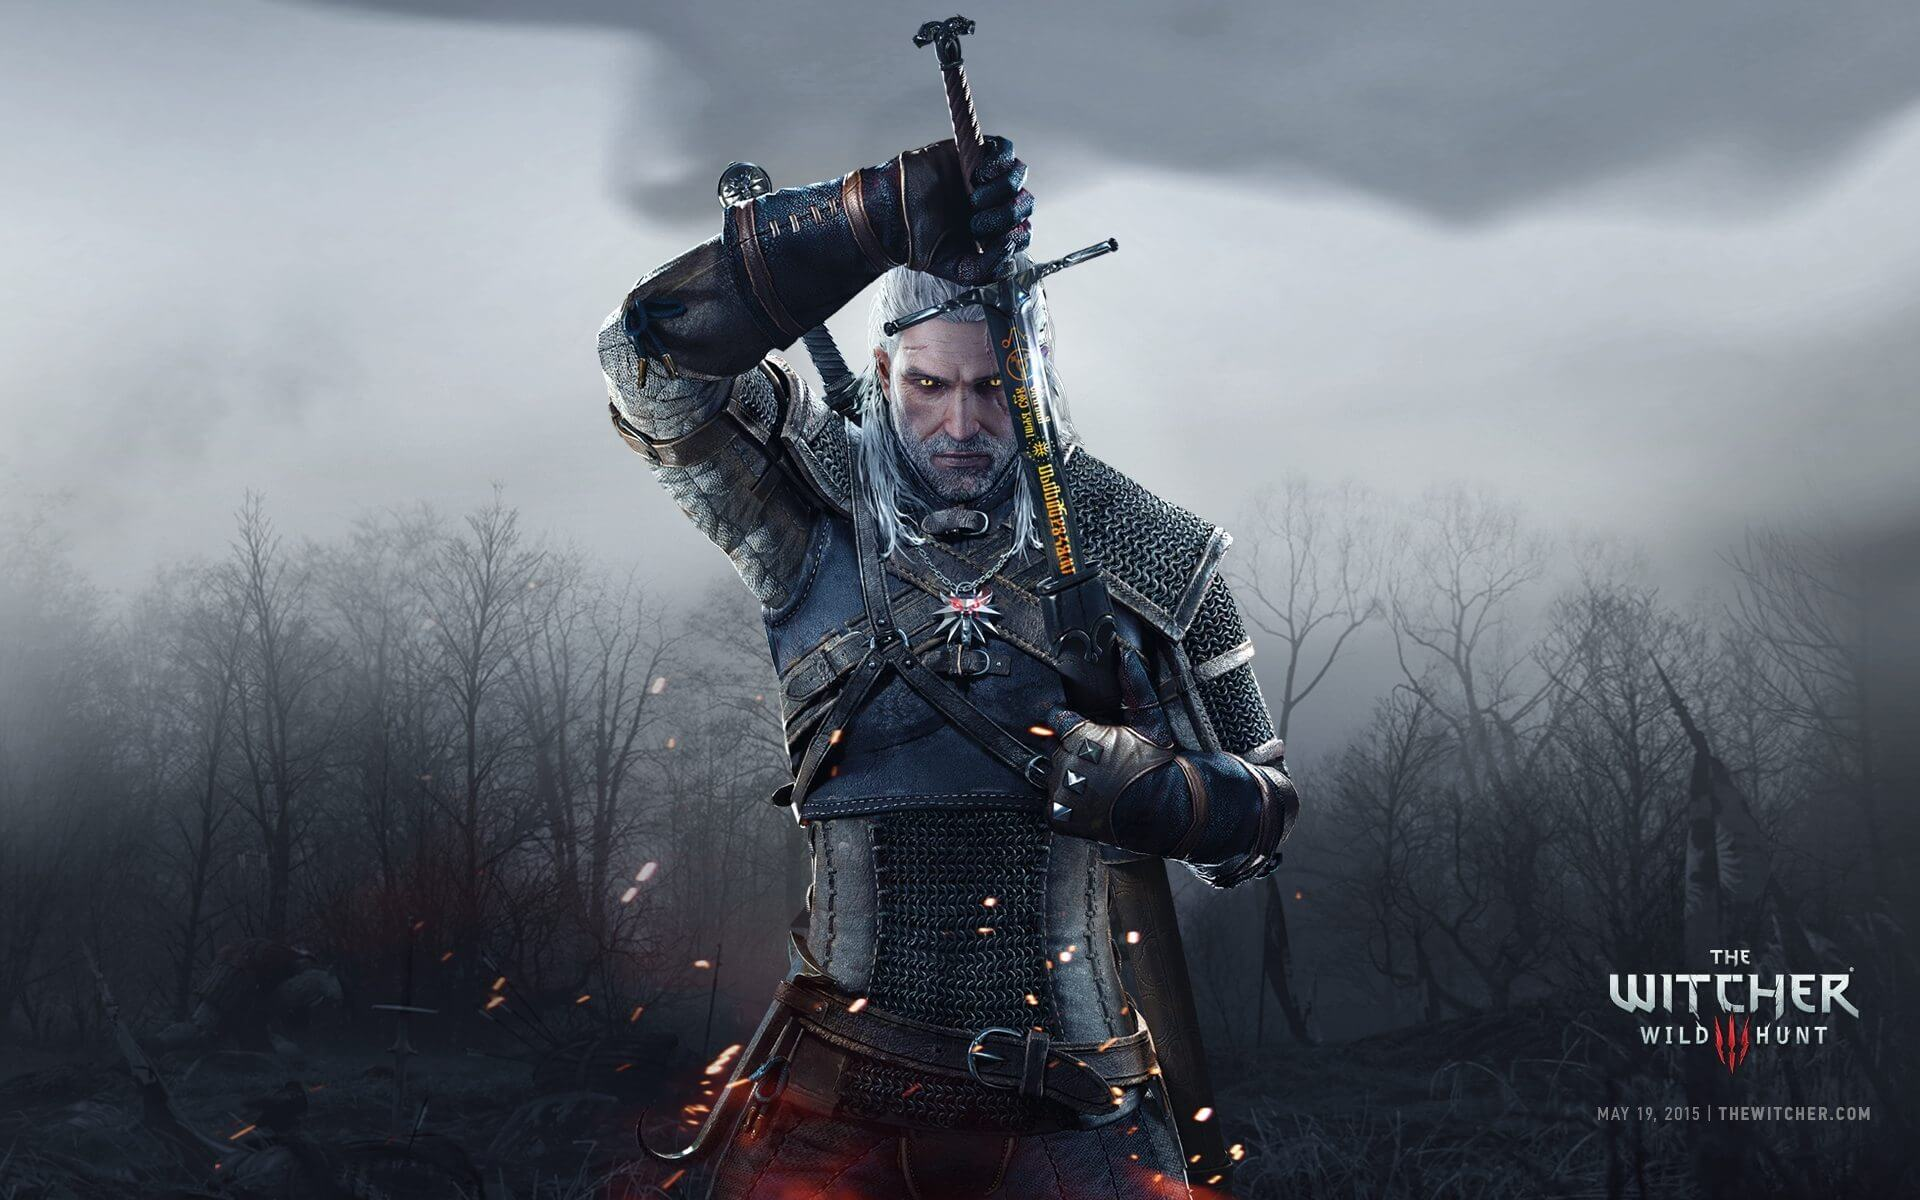 witcher3 en wallpaper wallpaper 7 1920x1200 1433245916 - The Witcher: ganhará filme em 2017